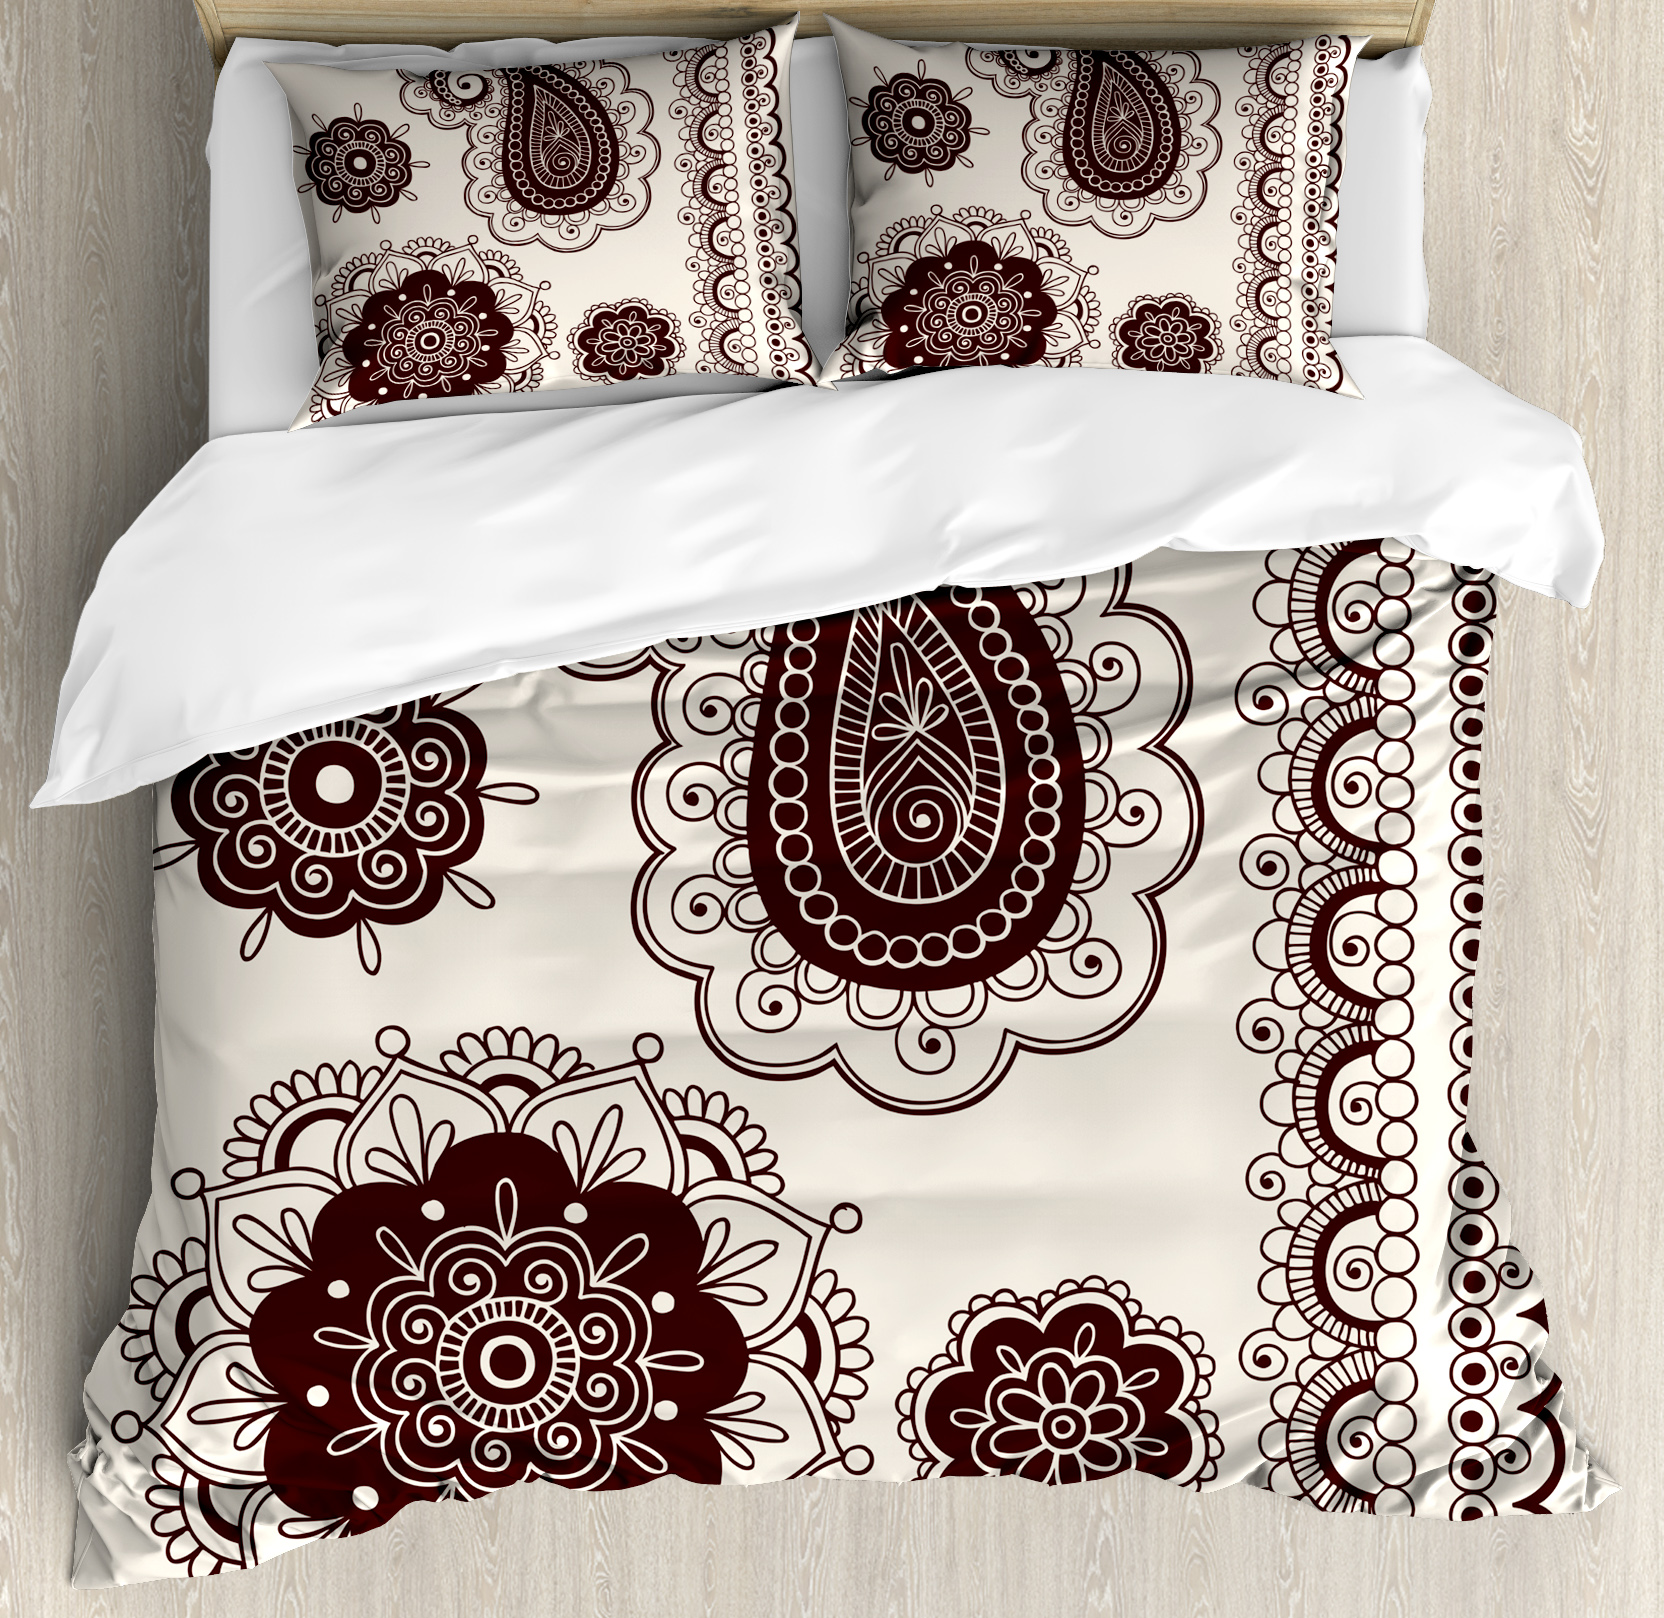 Henna Duvet Cover Set, Intricate Hand Drawn Tattoo Paisley Doodle Eastern Culture Inspired